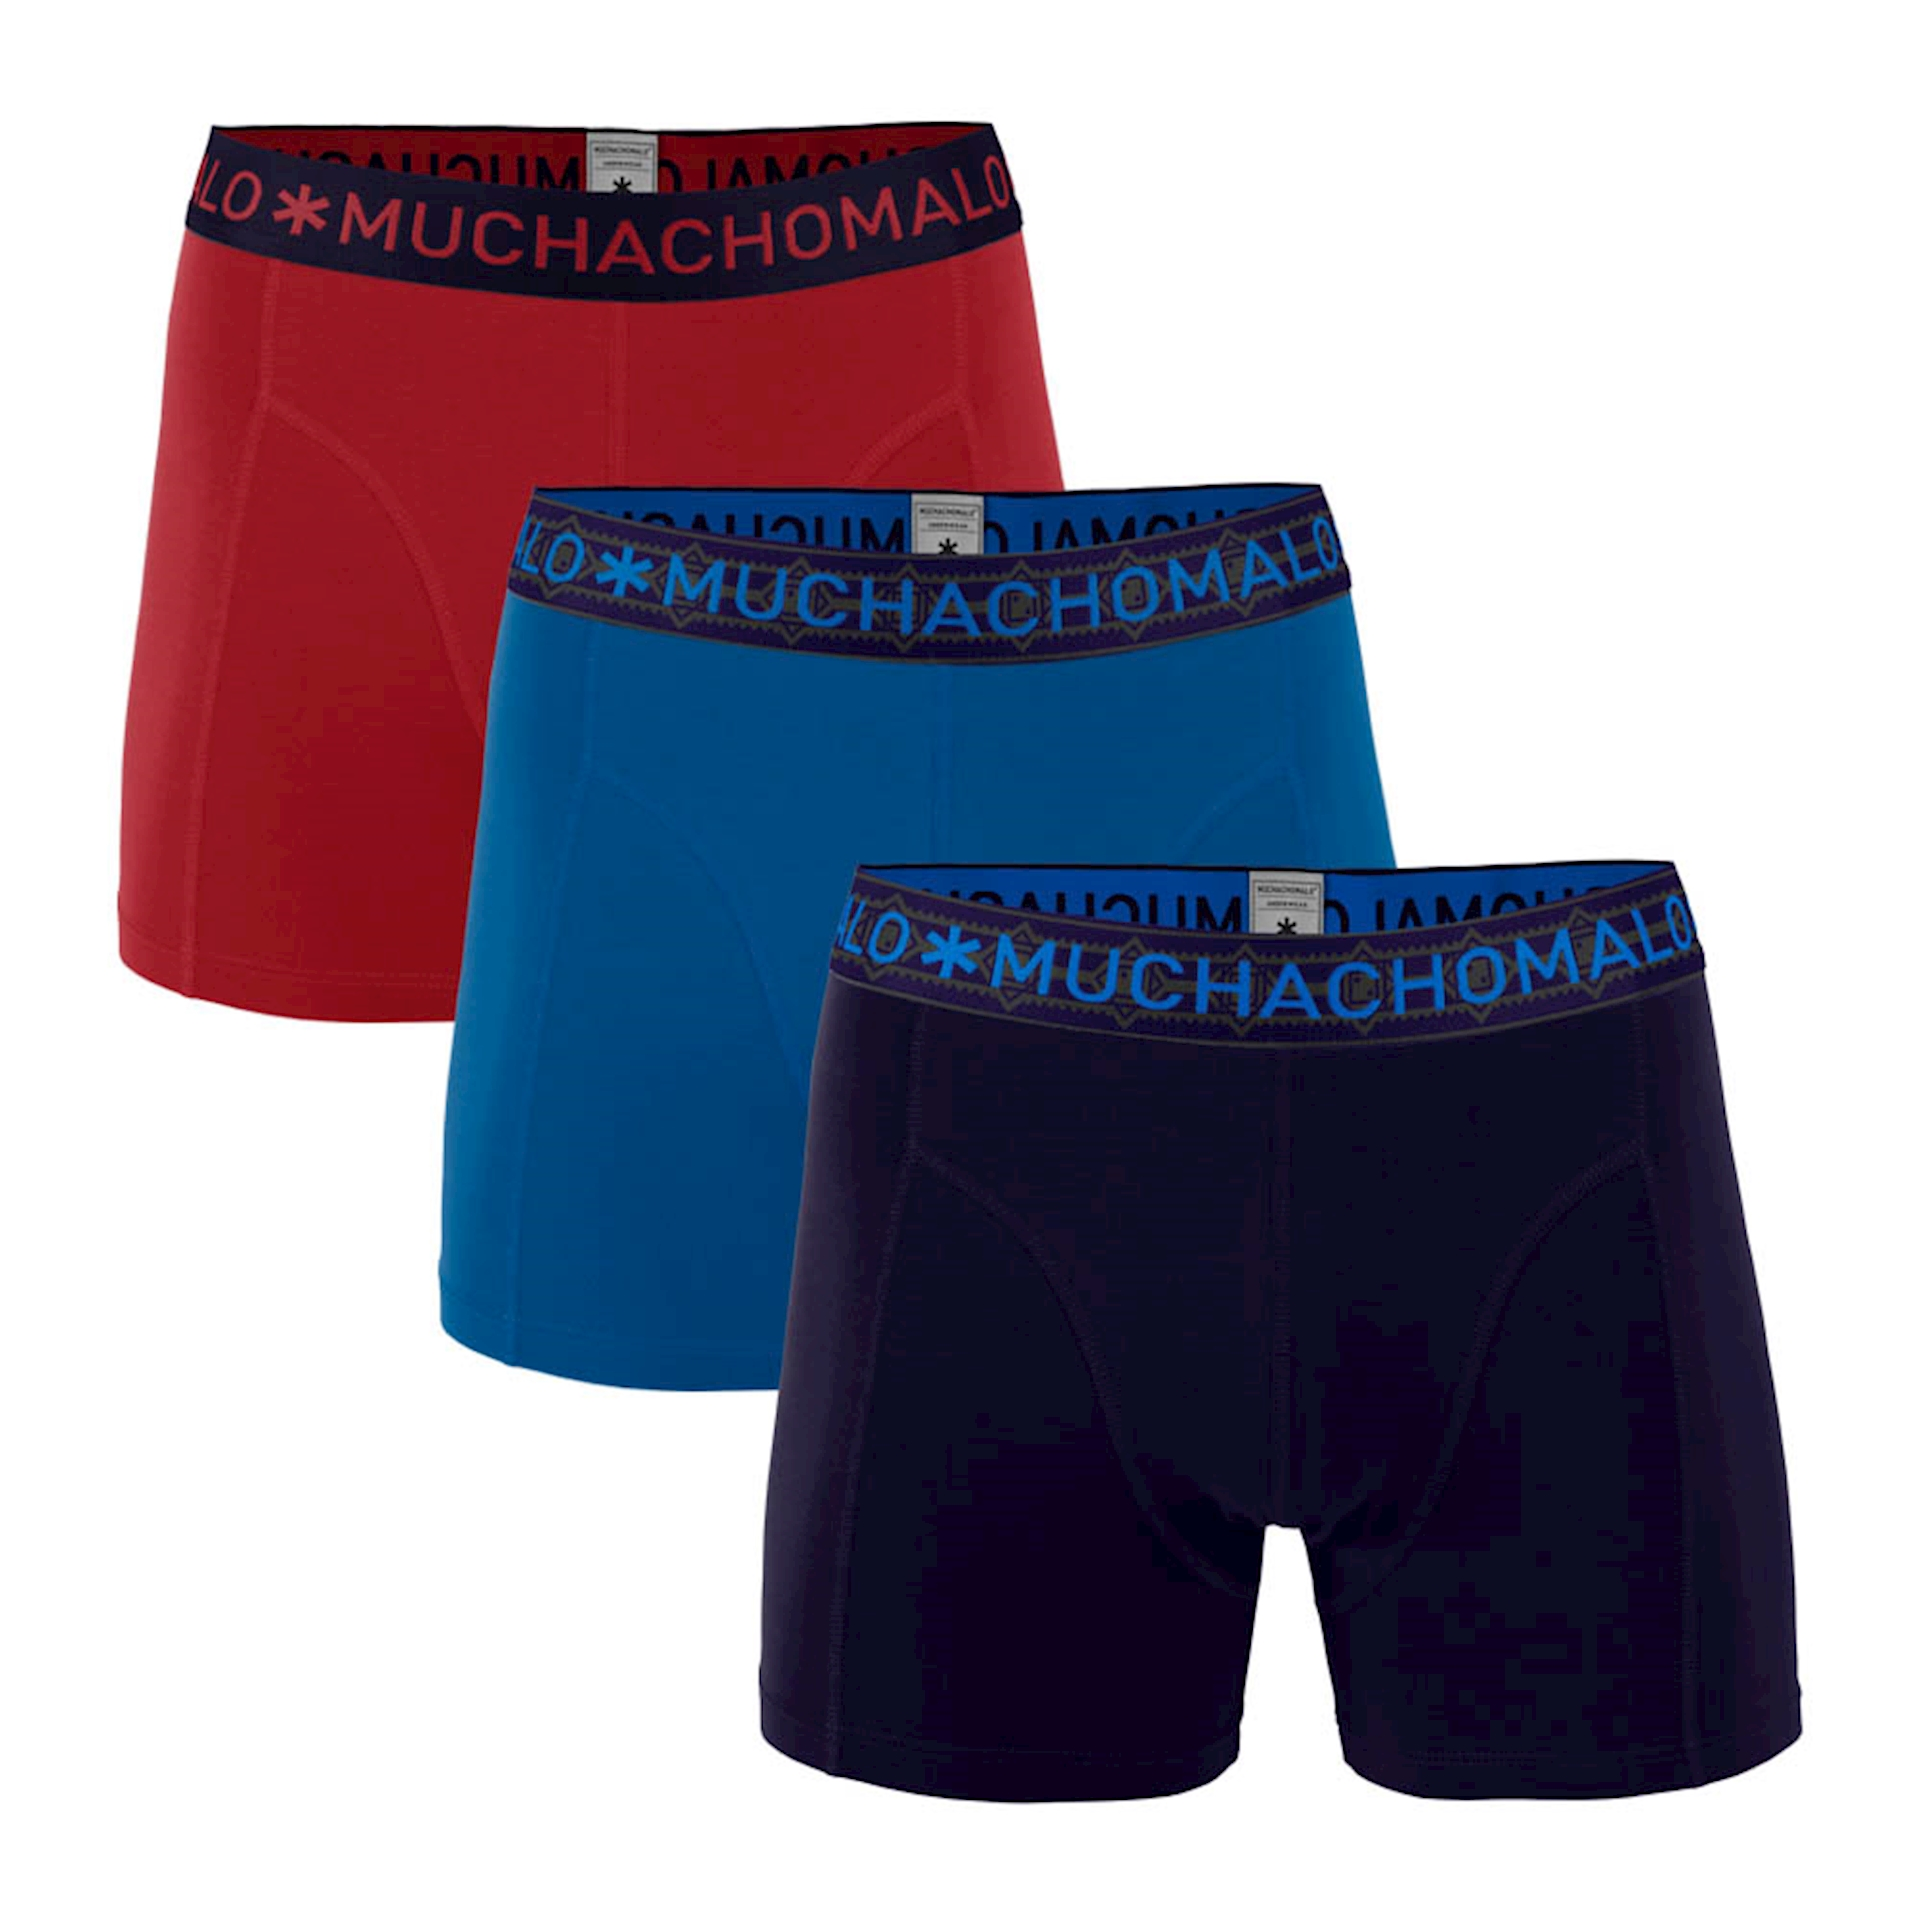 Muchachomalo boxershorts Solid 3-pack-XXL